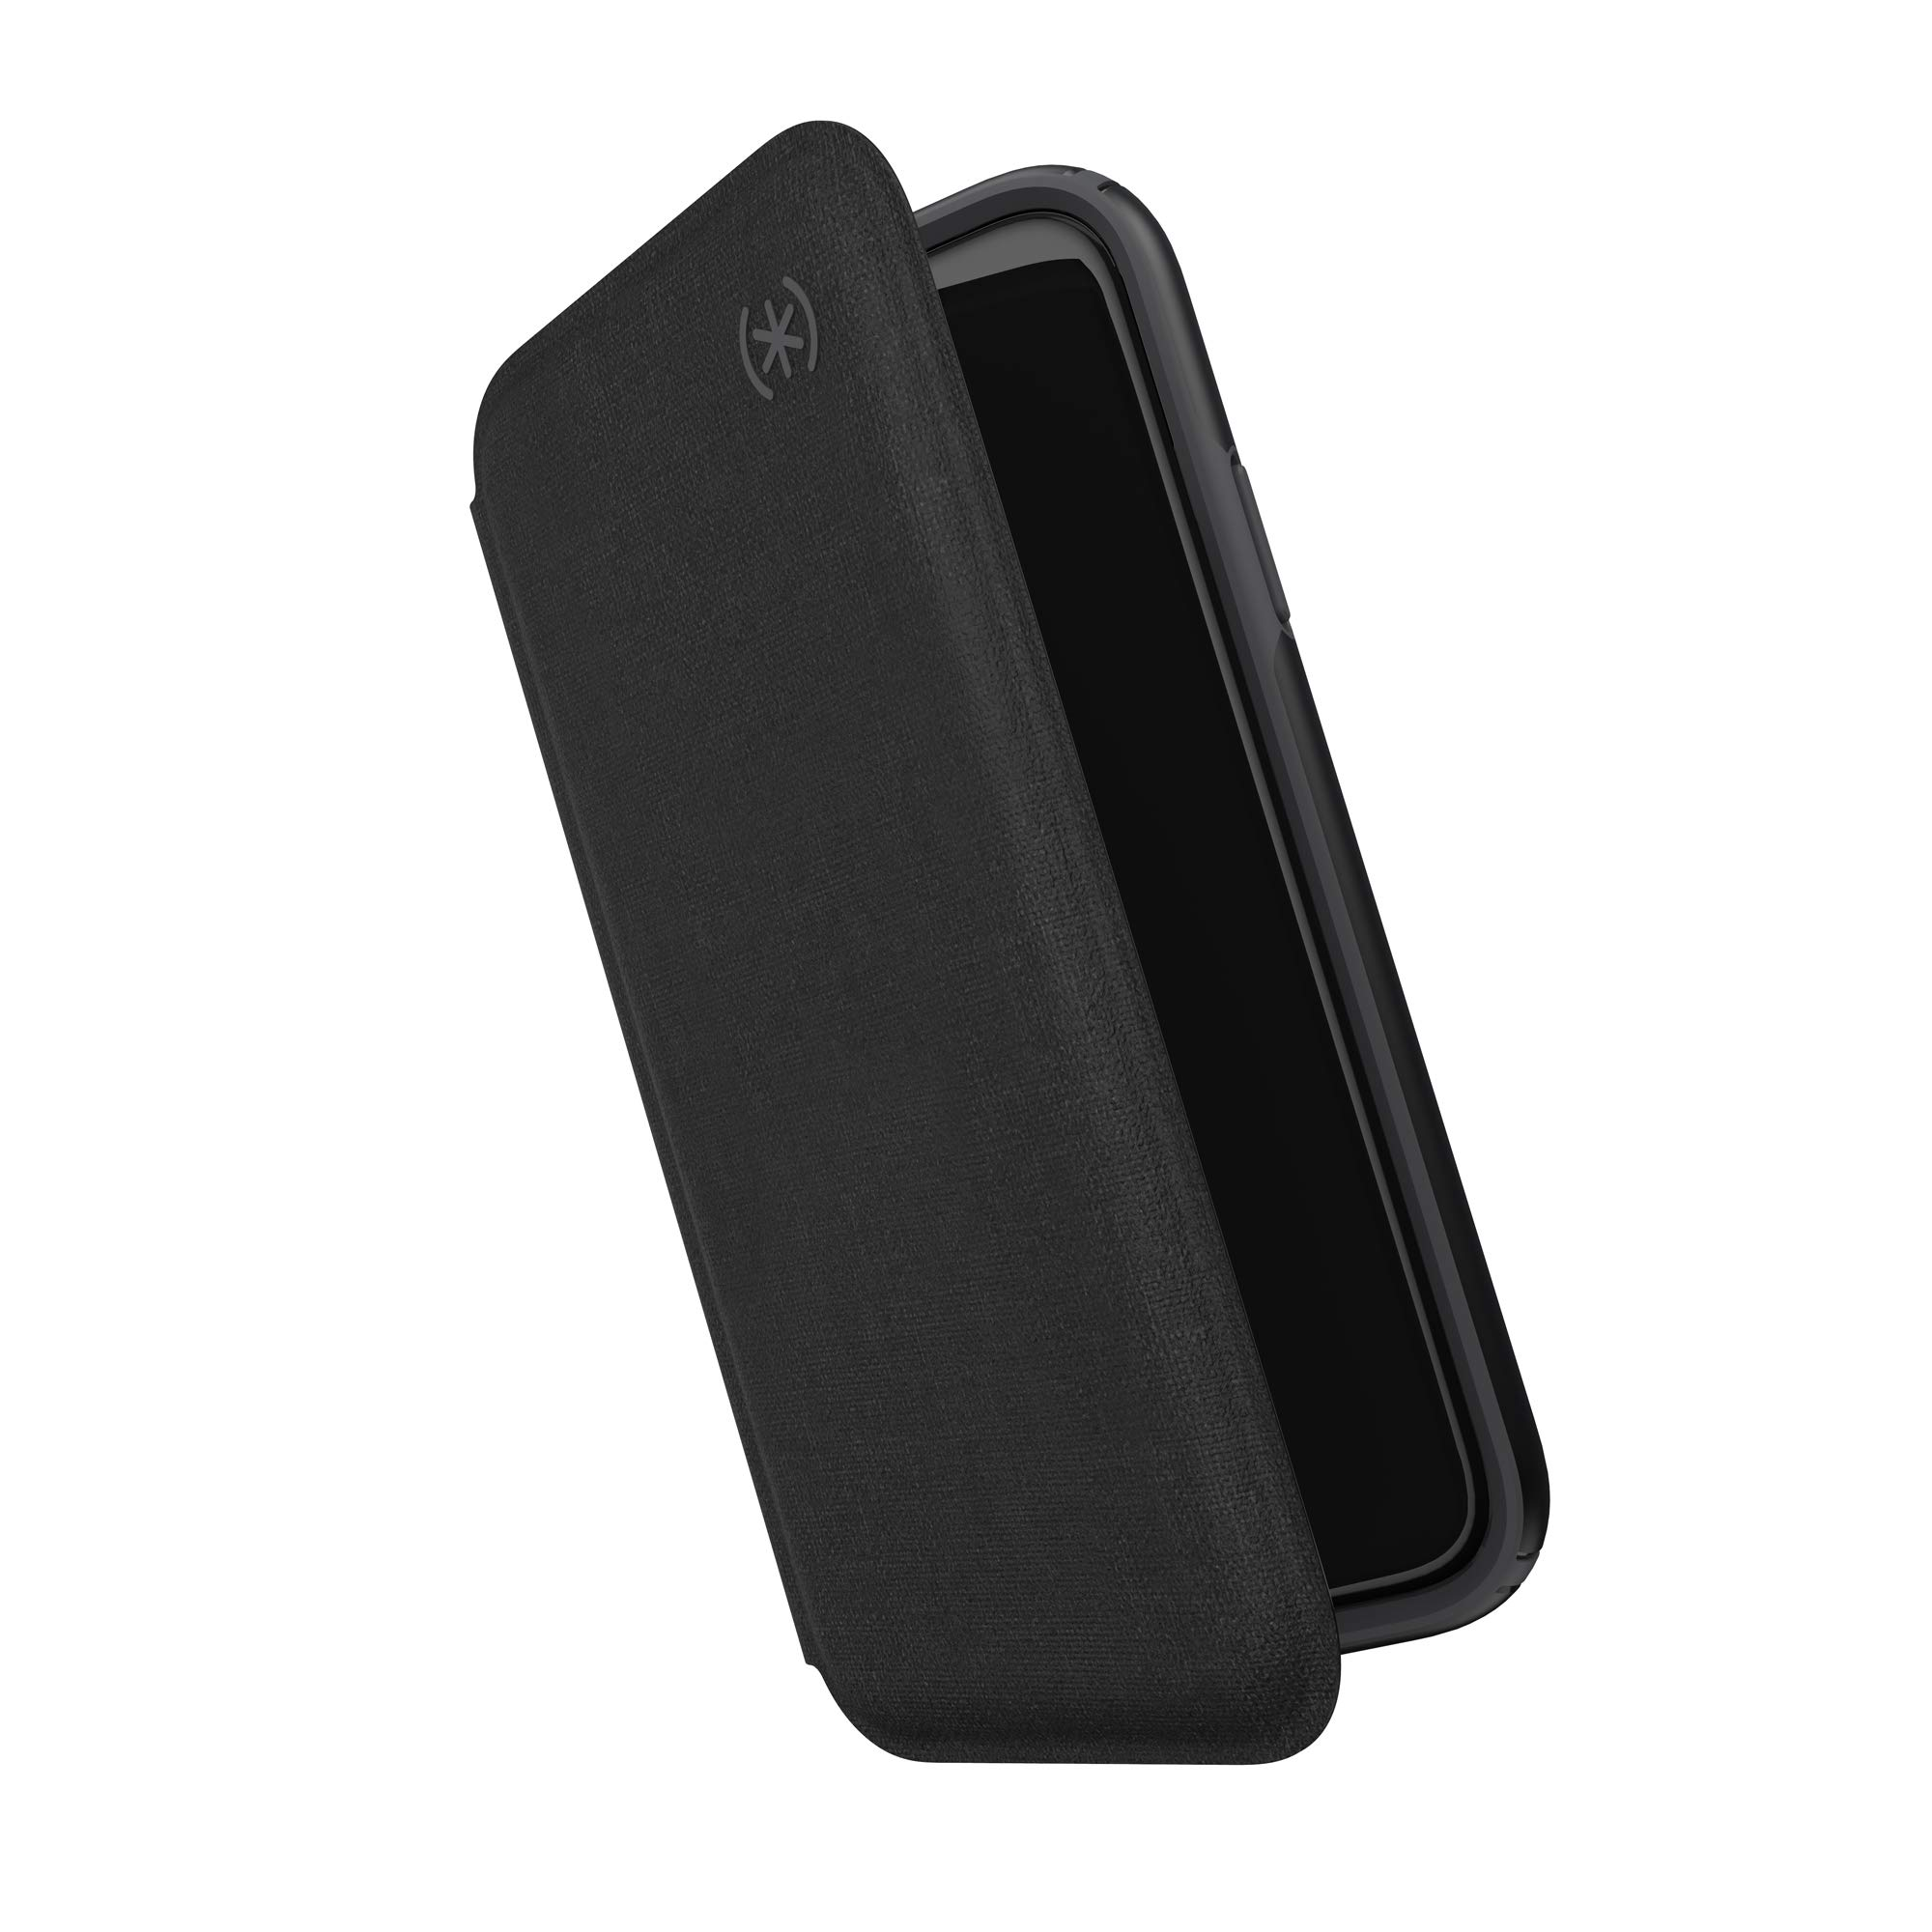 Speck Presidio Folio iPhone 11 Case, Heathered Black/Black/Slate Grey